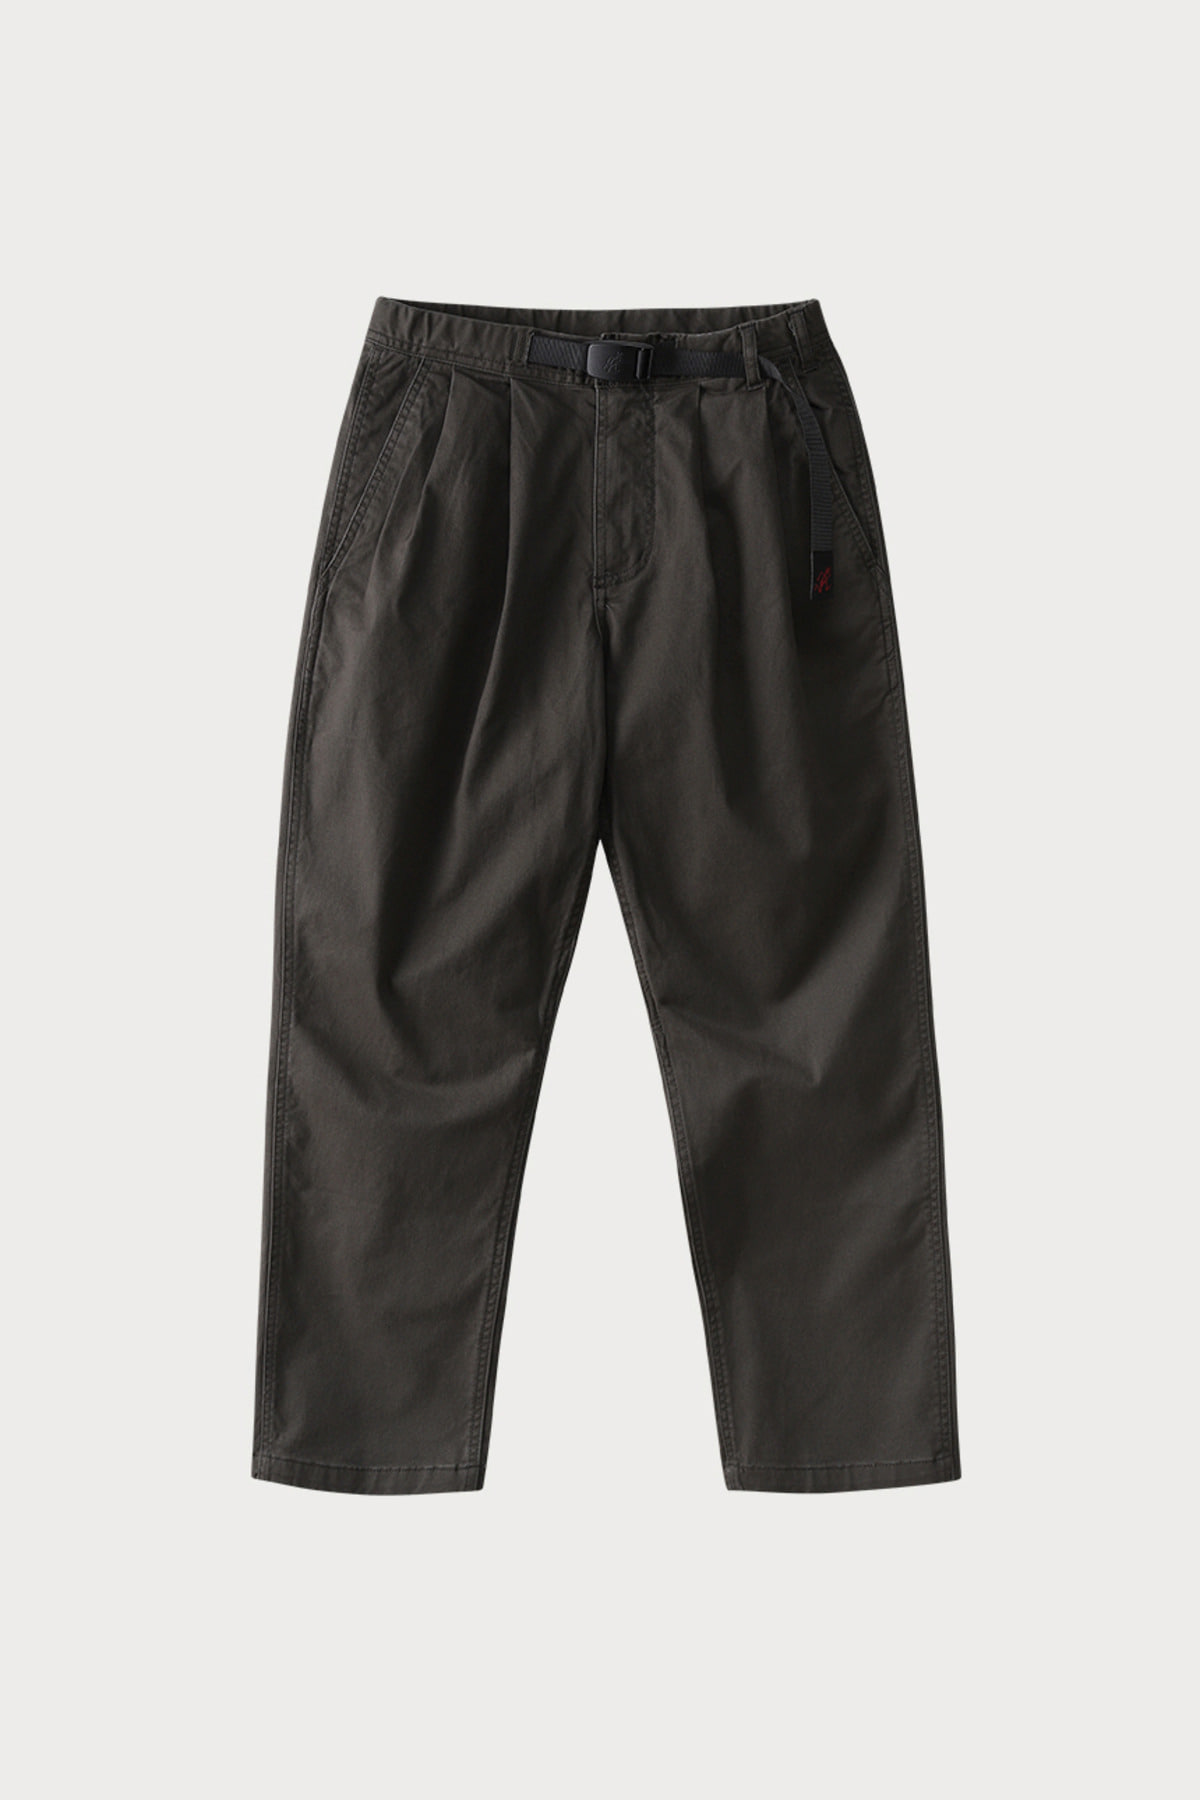 GURKHA PANTS DARK BROWN